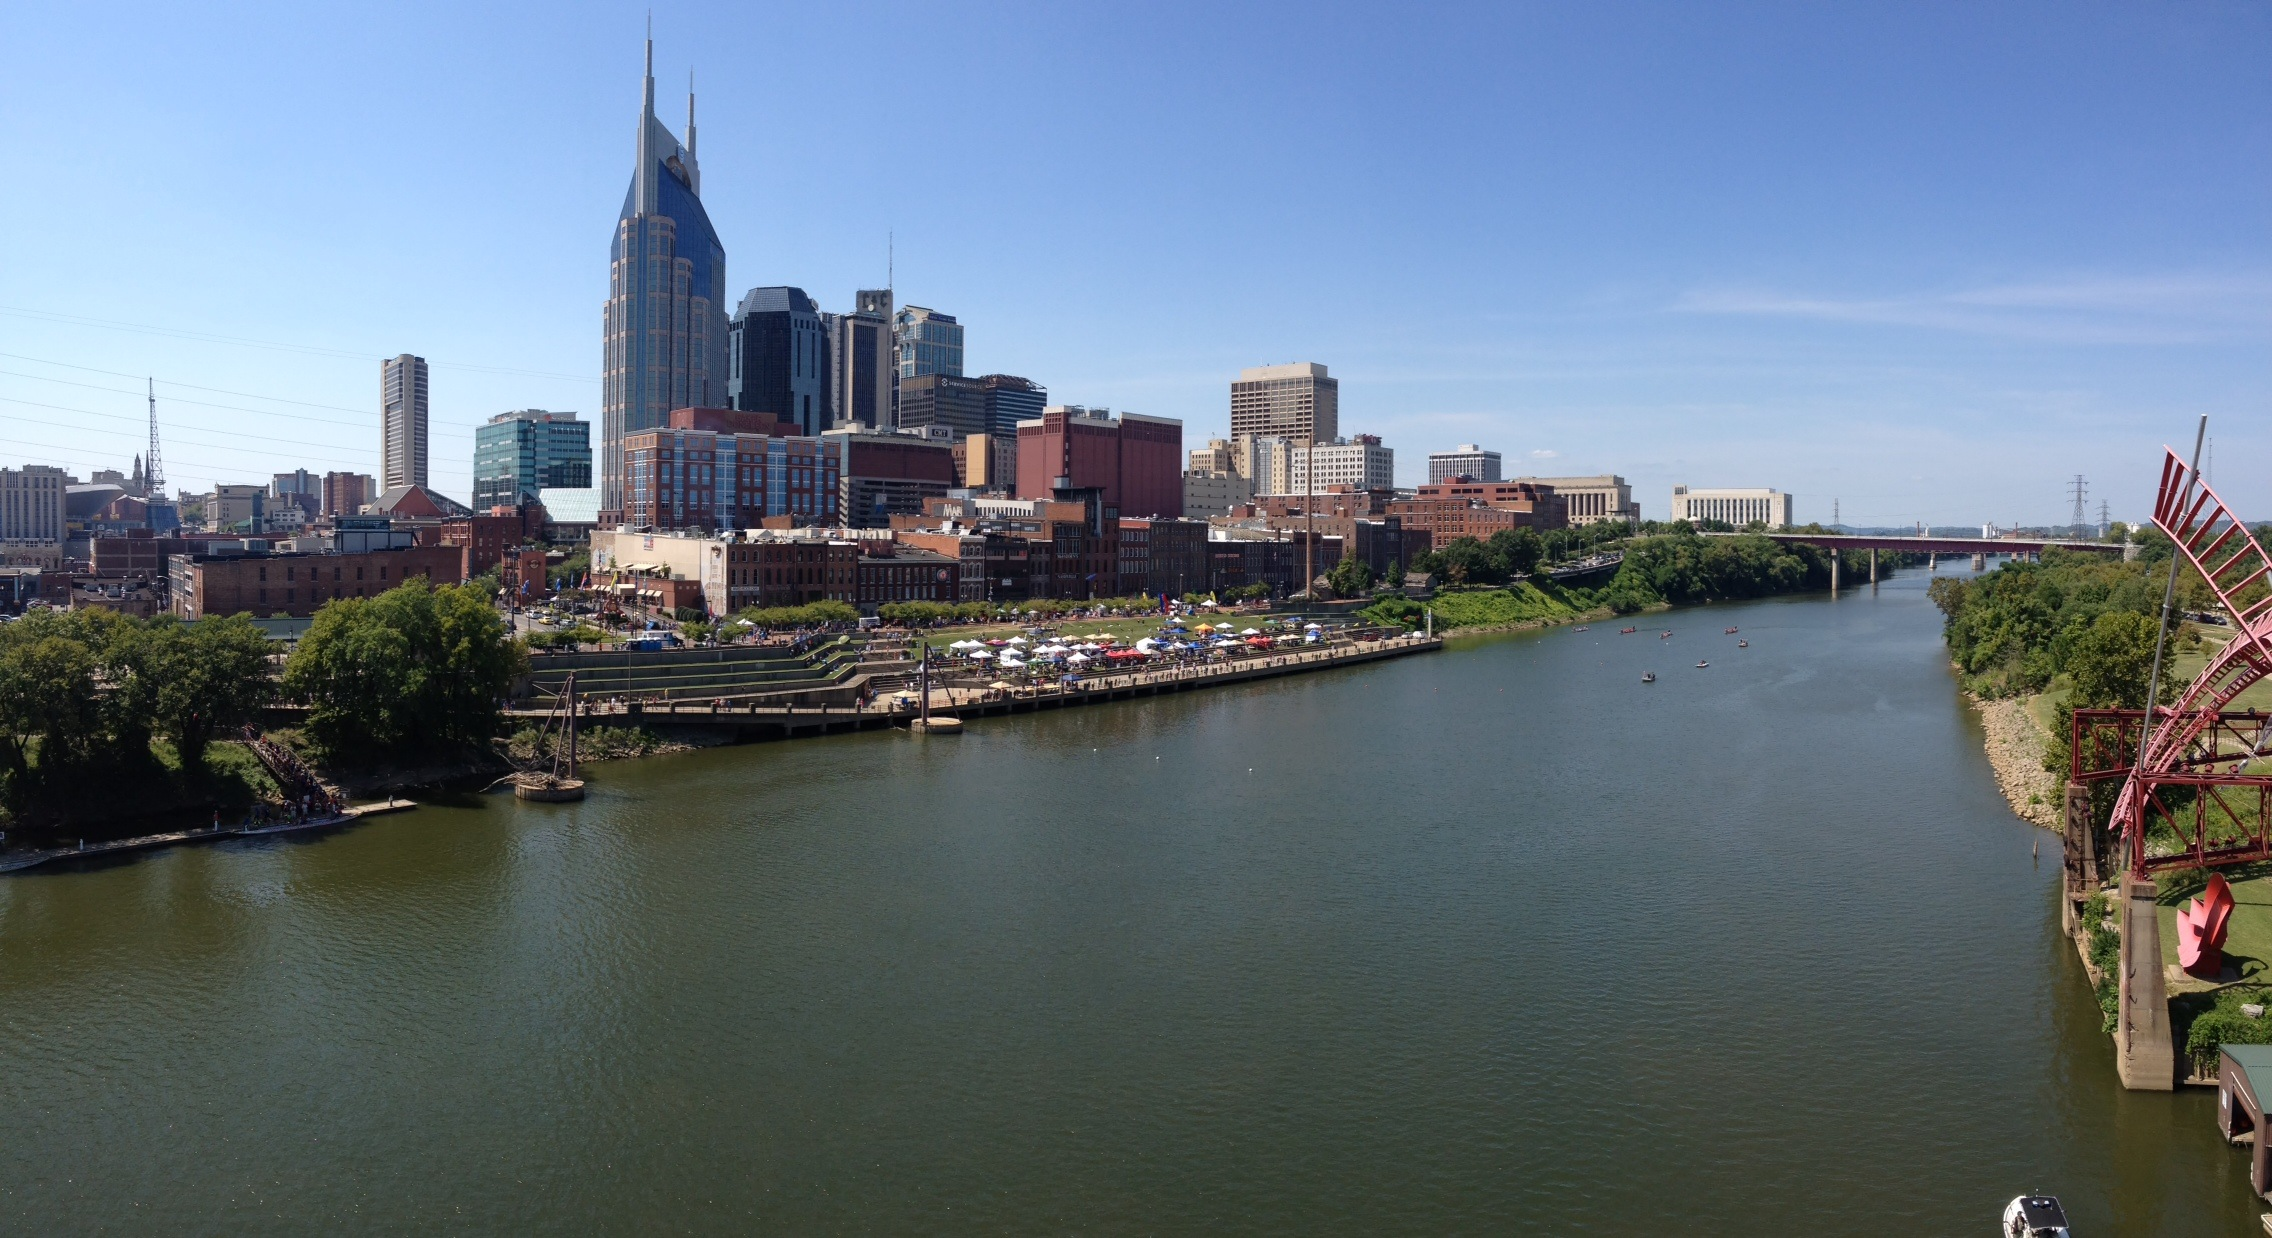 The Cumberland River